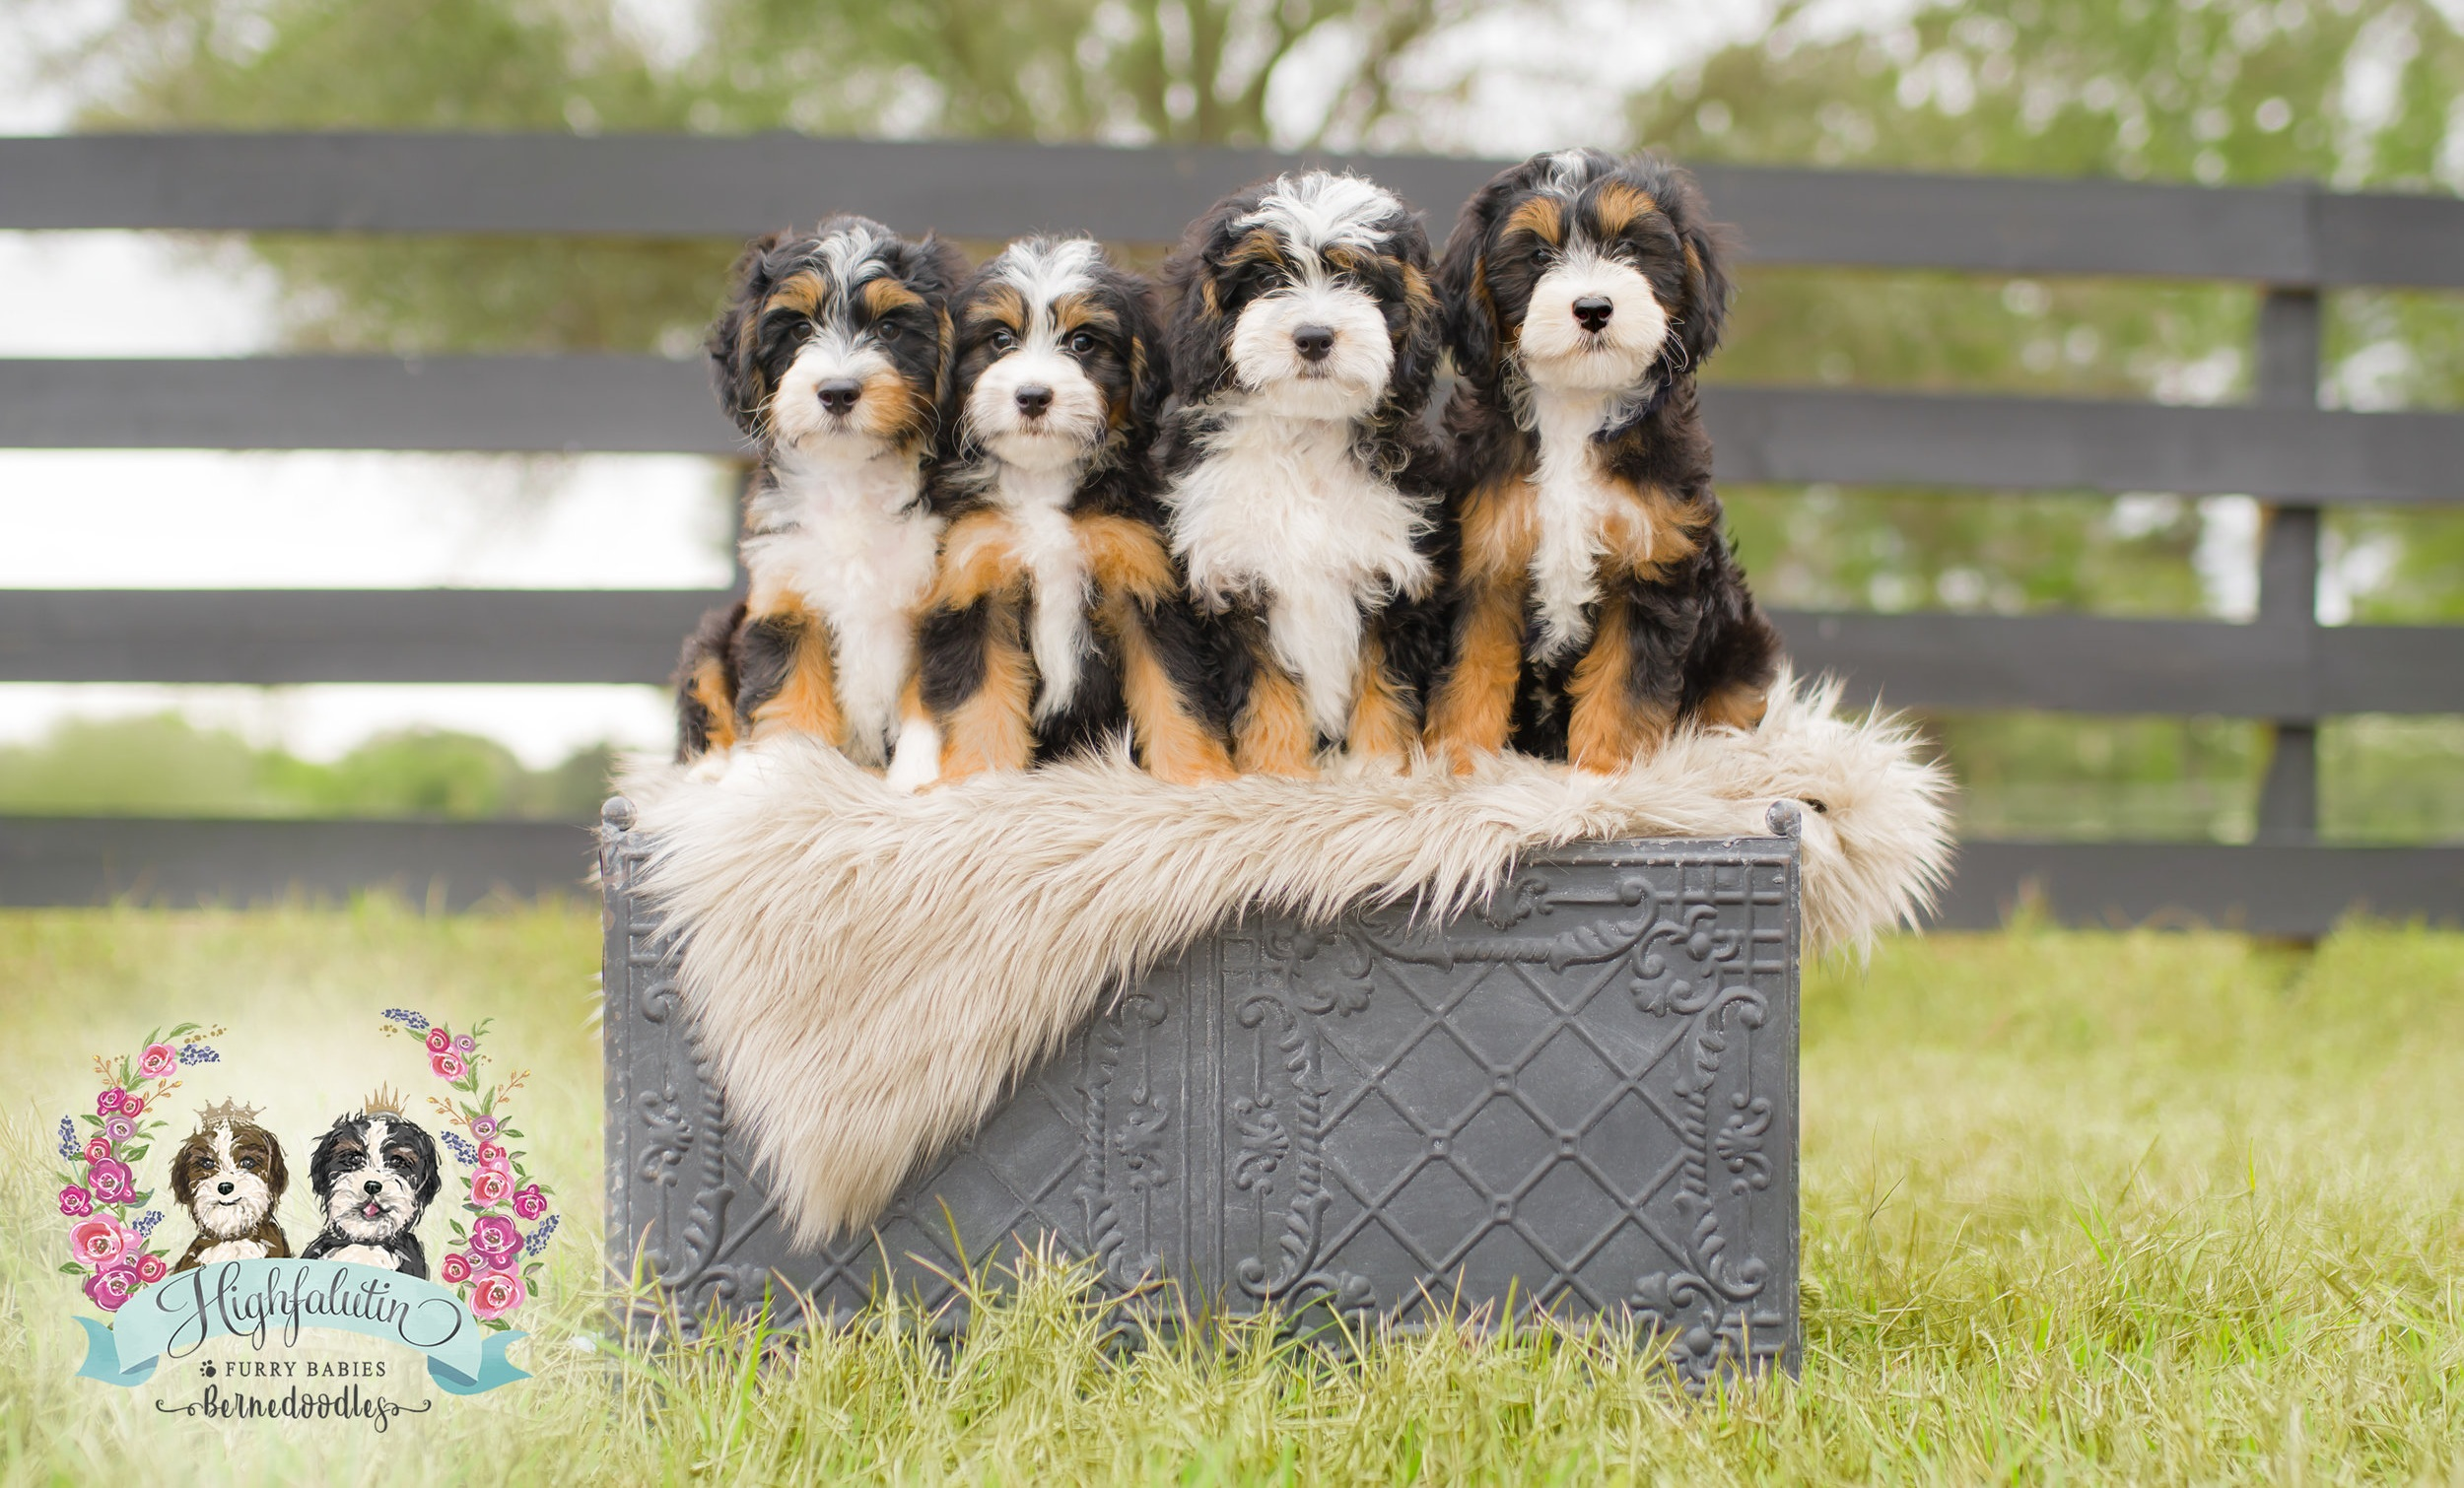 Welcome to Highfalutin Furry Babies - Boutique Bernedoodle Breeder